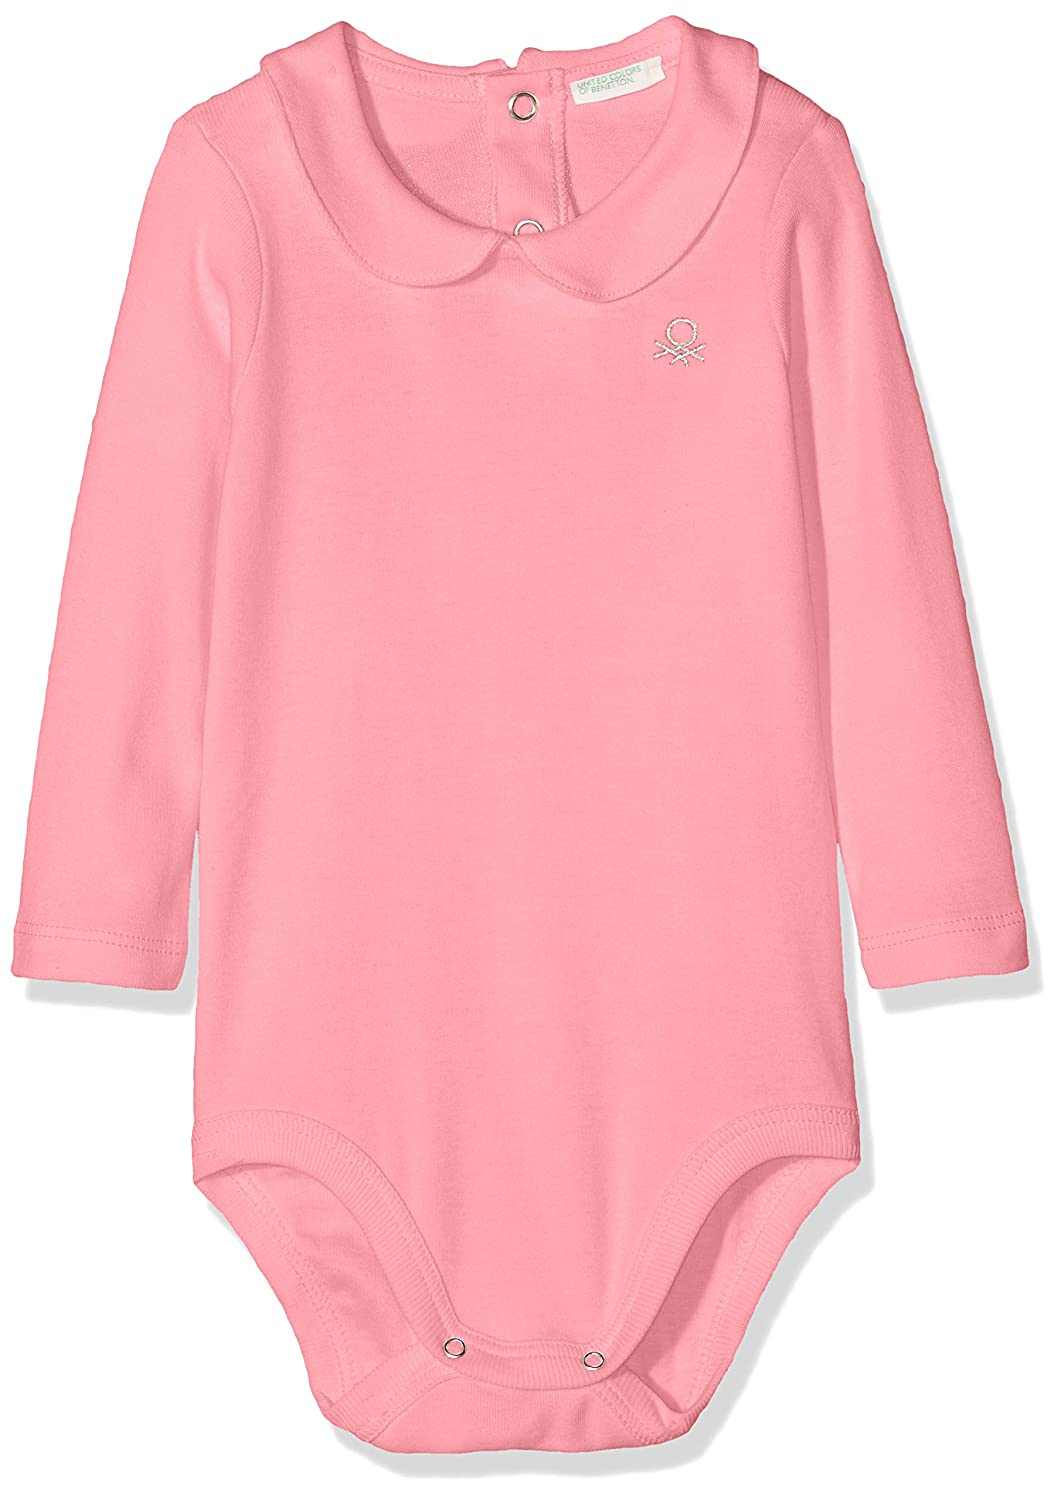 UNITED COLORS OF BENETTON Bodysuit L/S, Grenouillère Bébé Fille 3I9WMB066